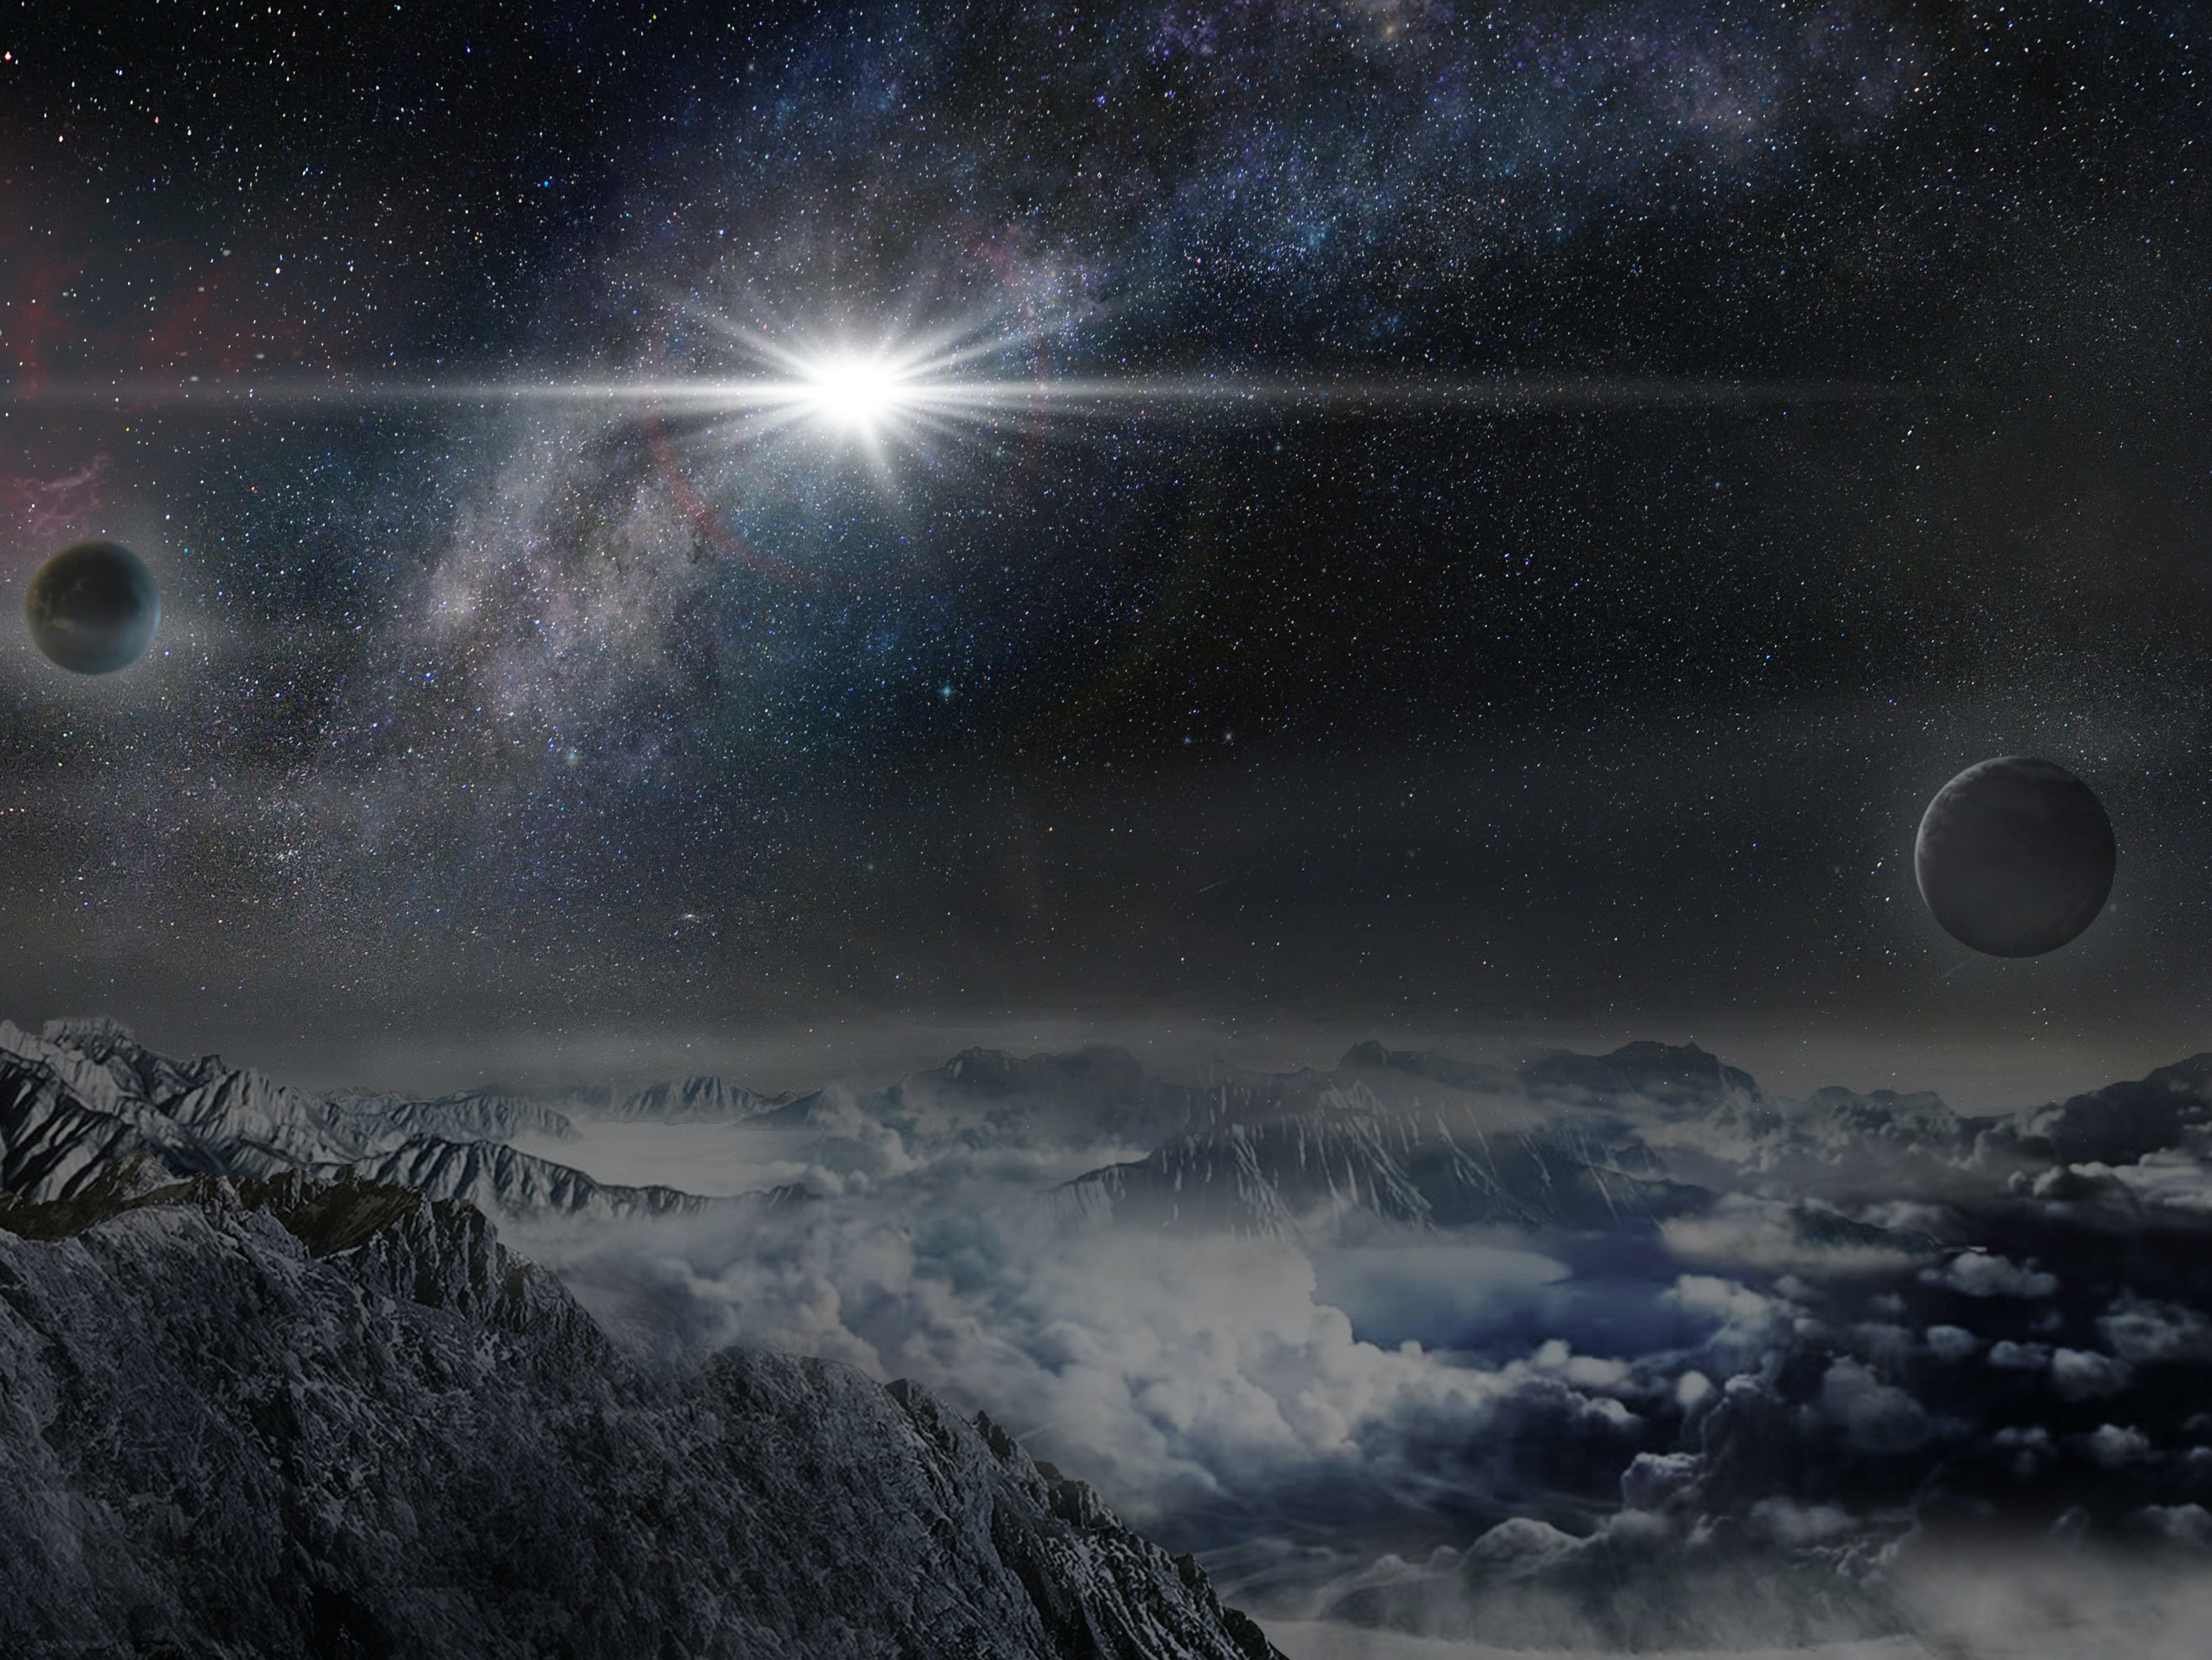 Scientists Have Found the Brightest Supernova Ever Detected